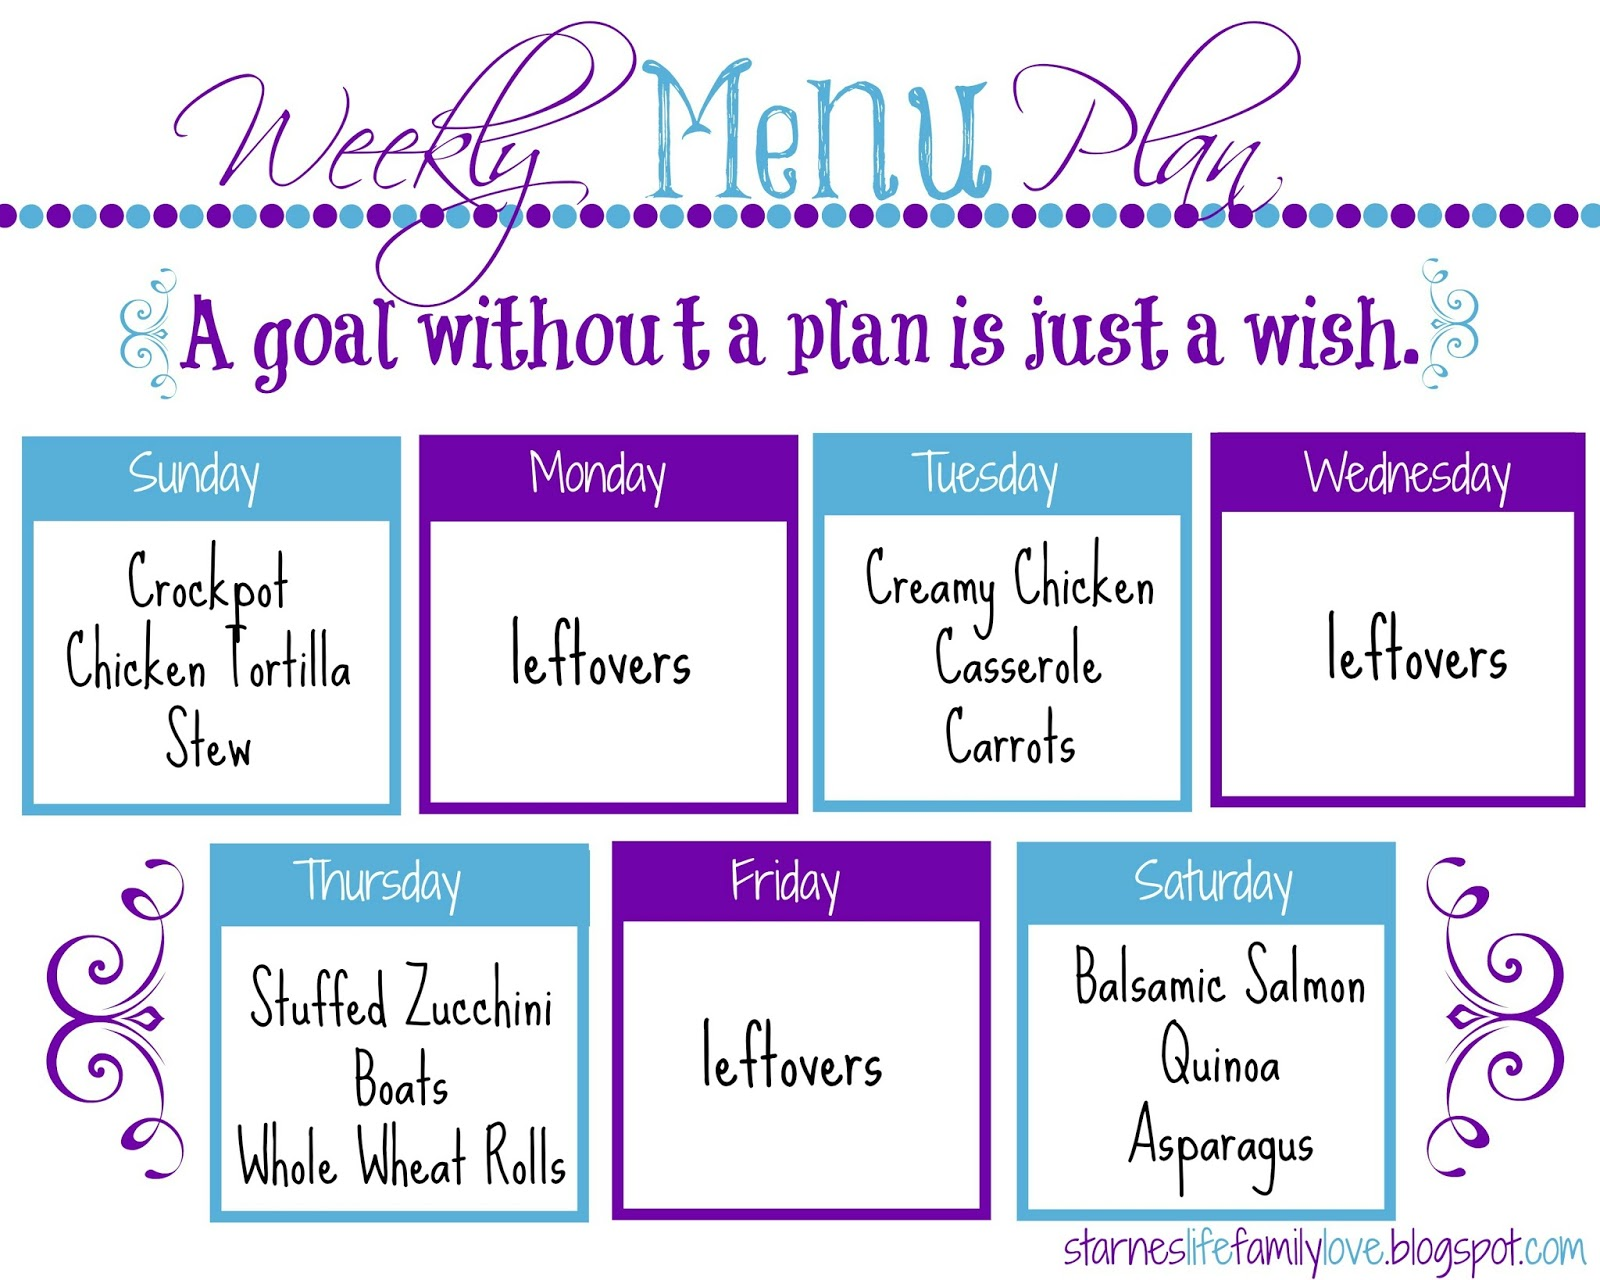 Life. Family. Love.: Menu Plan: Week of 01.04.15